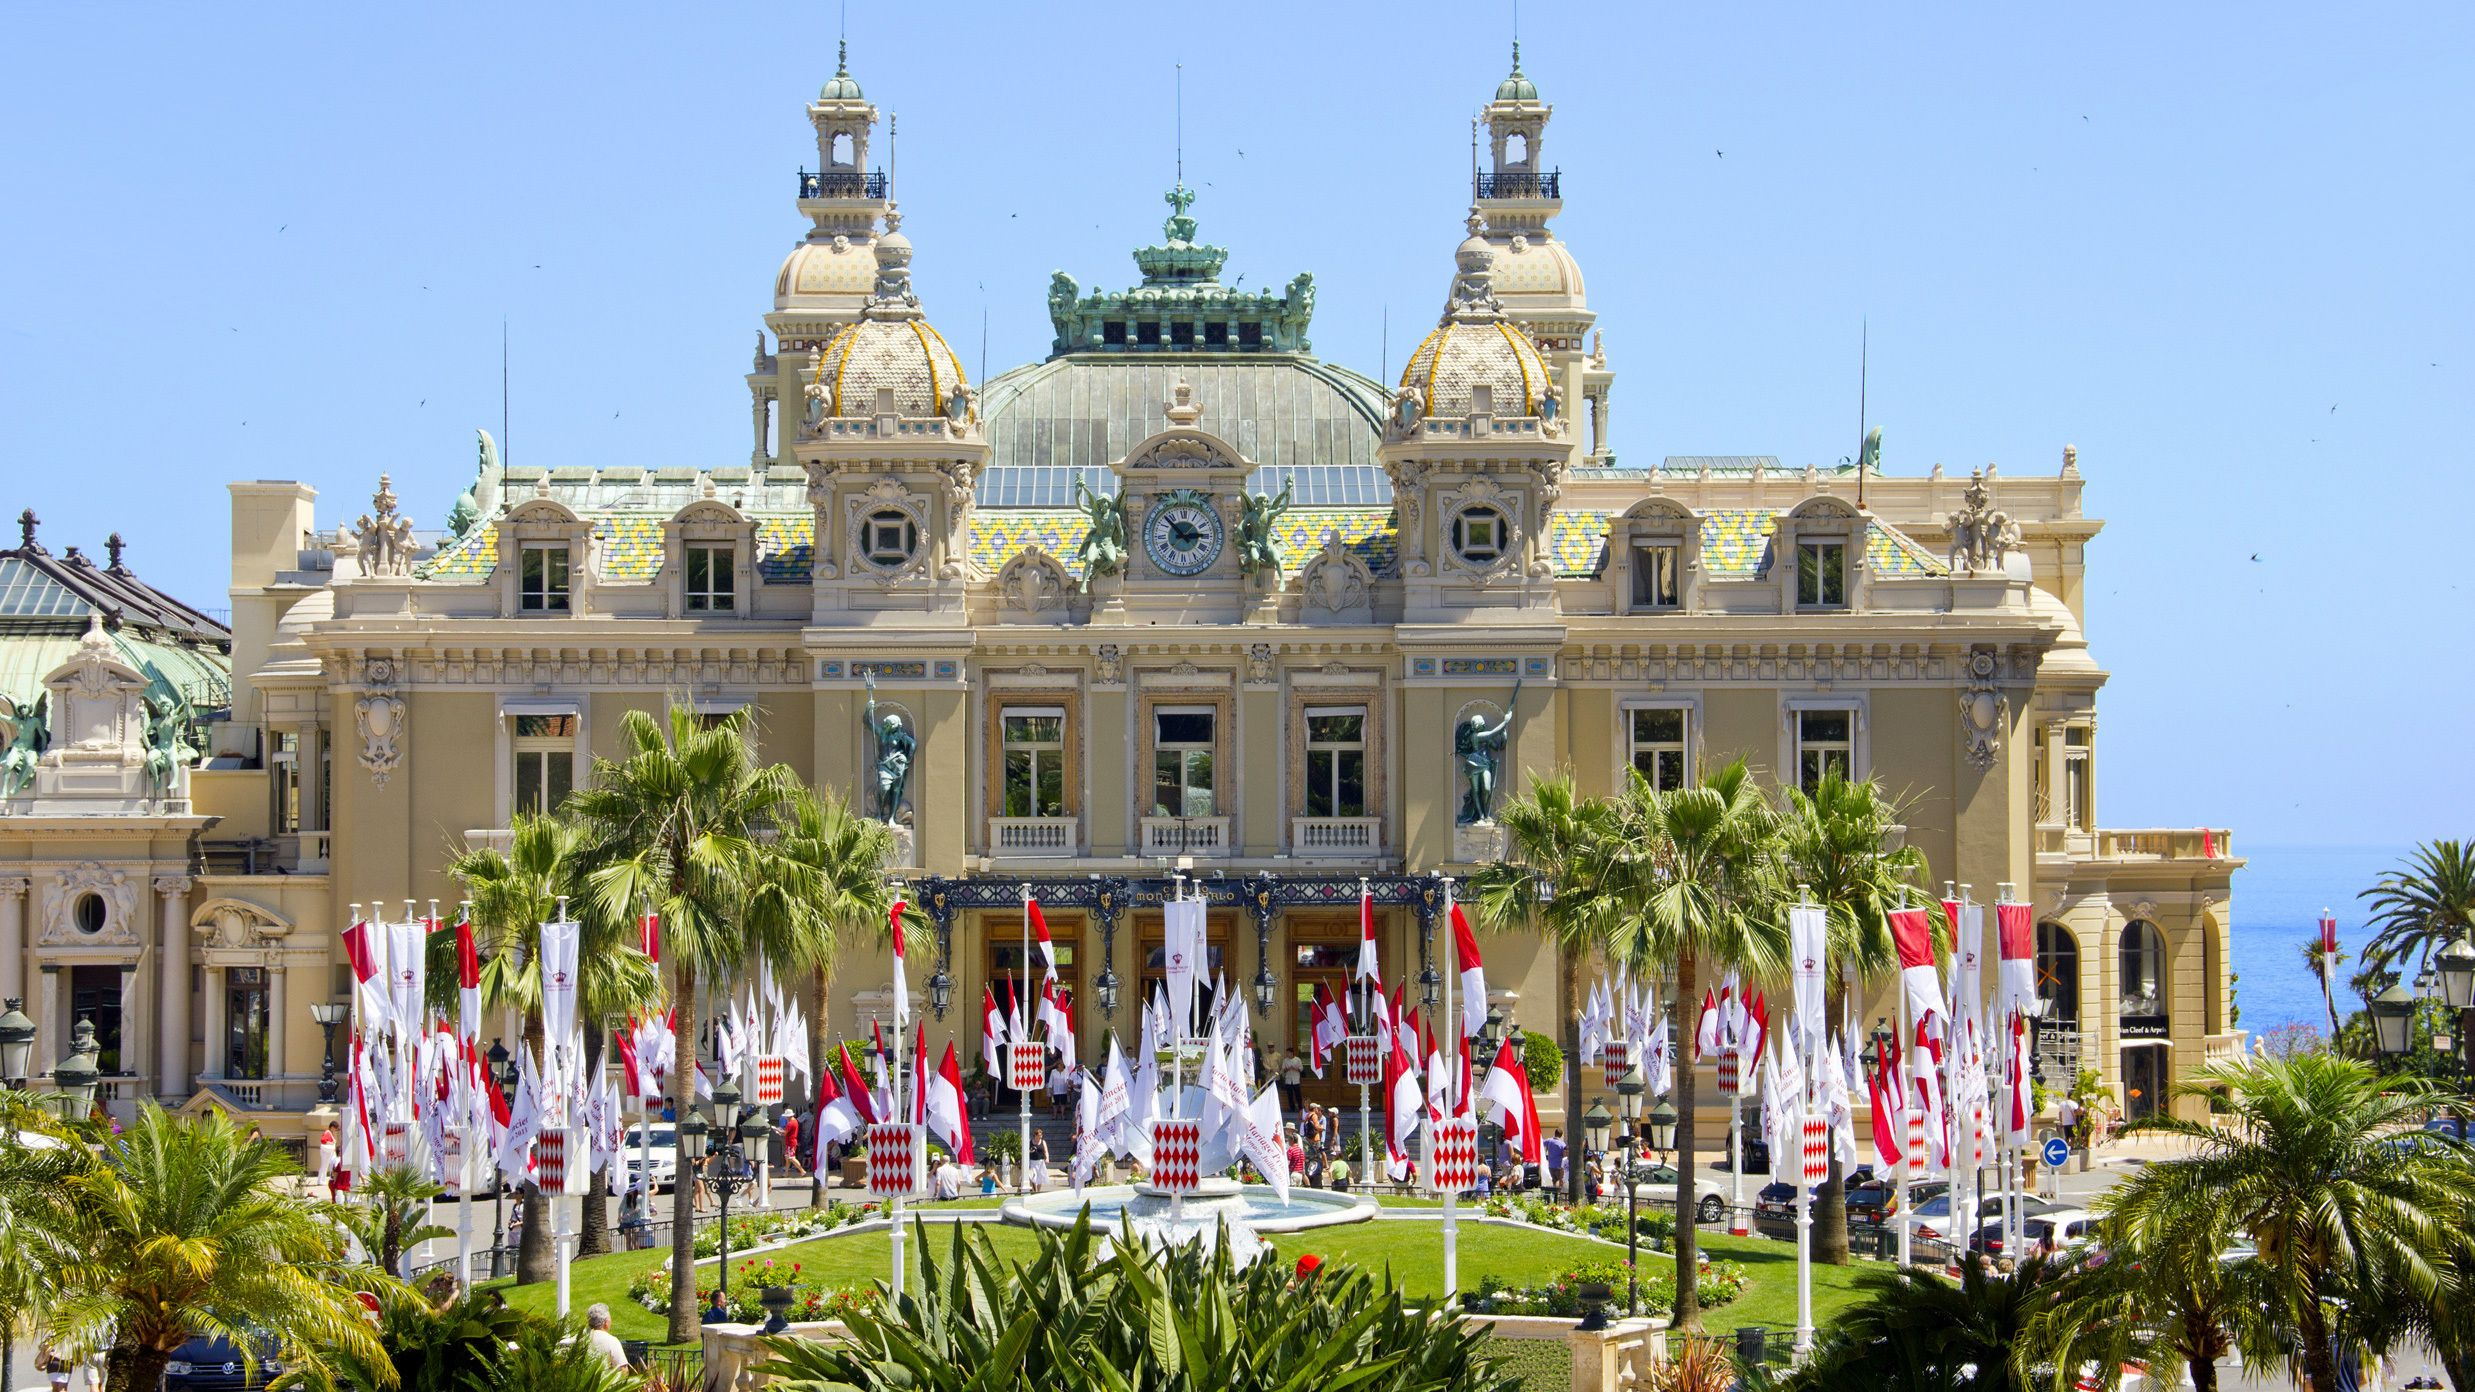 Visiting the Monte Carlo Casino in France